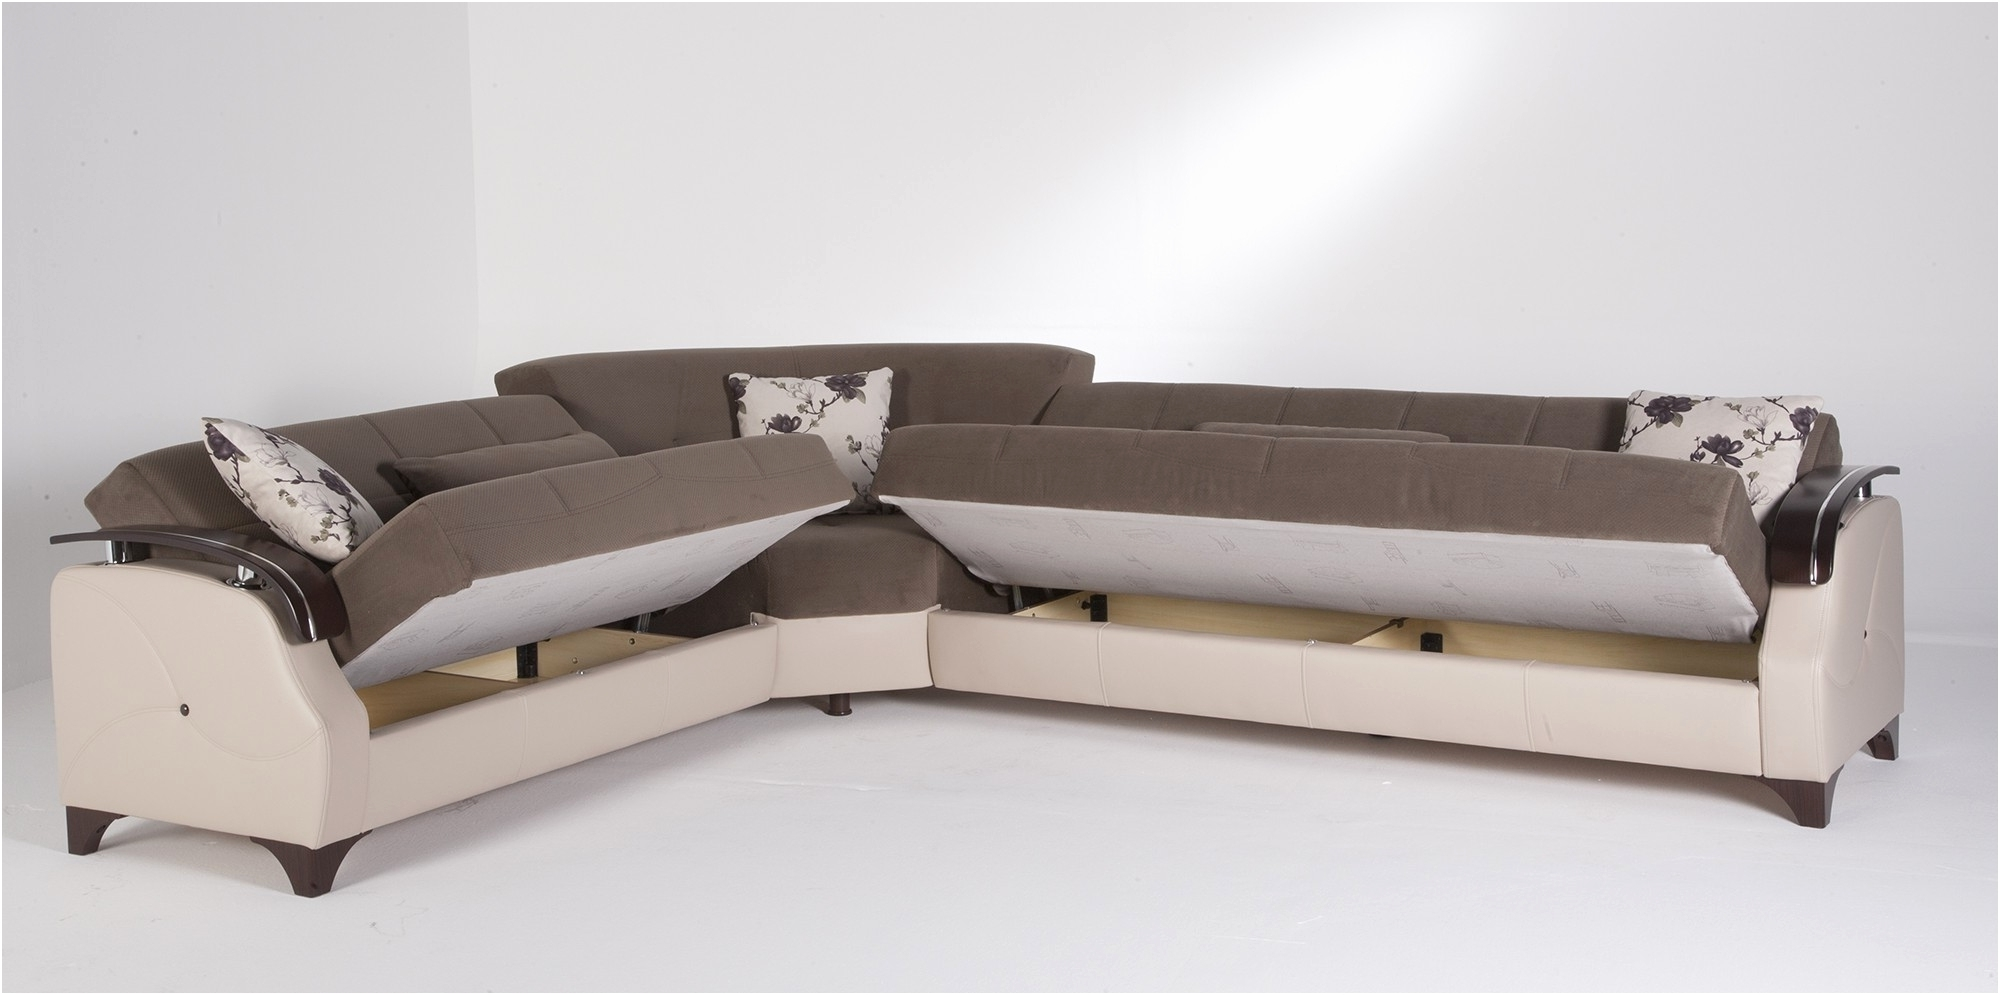 Recent Small Modular Sofas Throughout Living Room : Modular Sofas For Small Spaces Space Saving Dining (View 4 of 20)